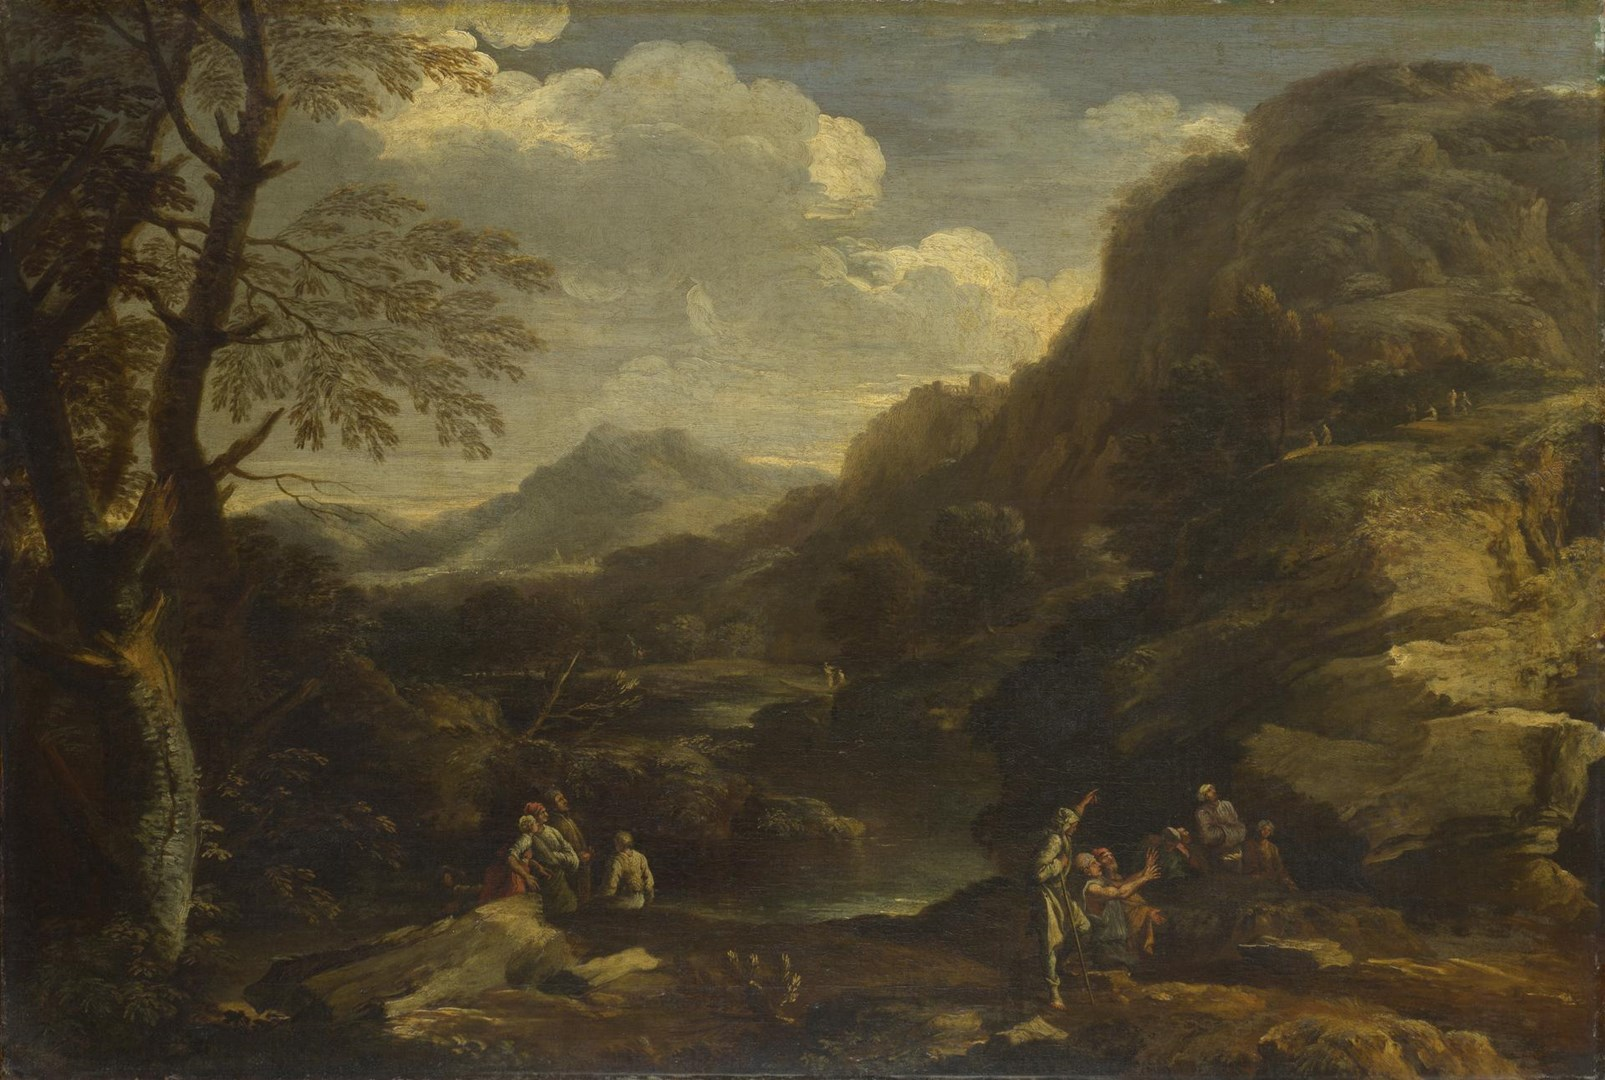 Mountainous Landscape with Figures by Style of Salvator Rosa